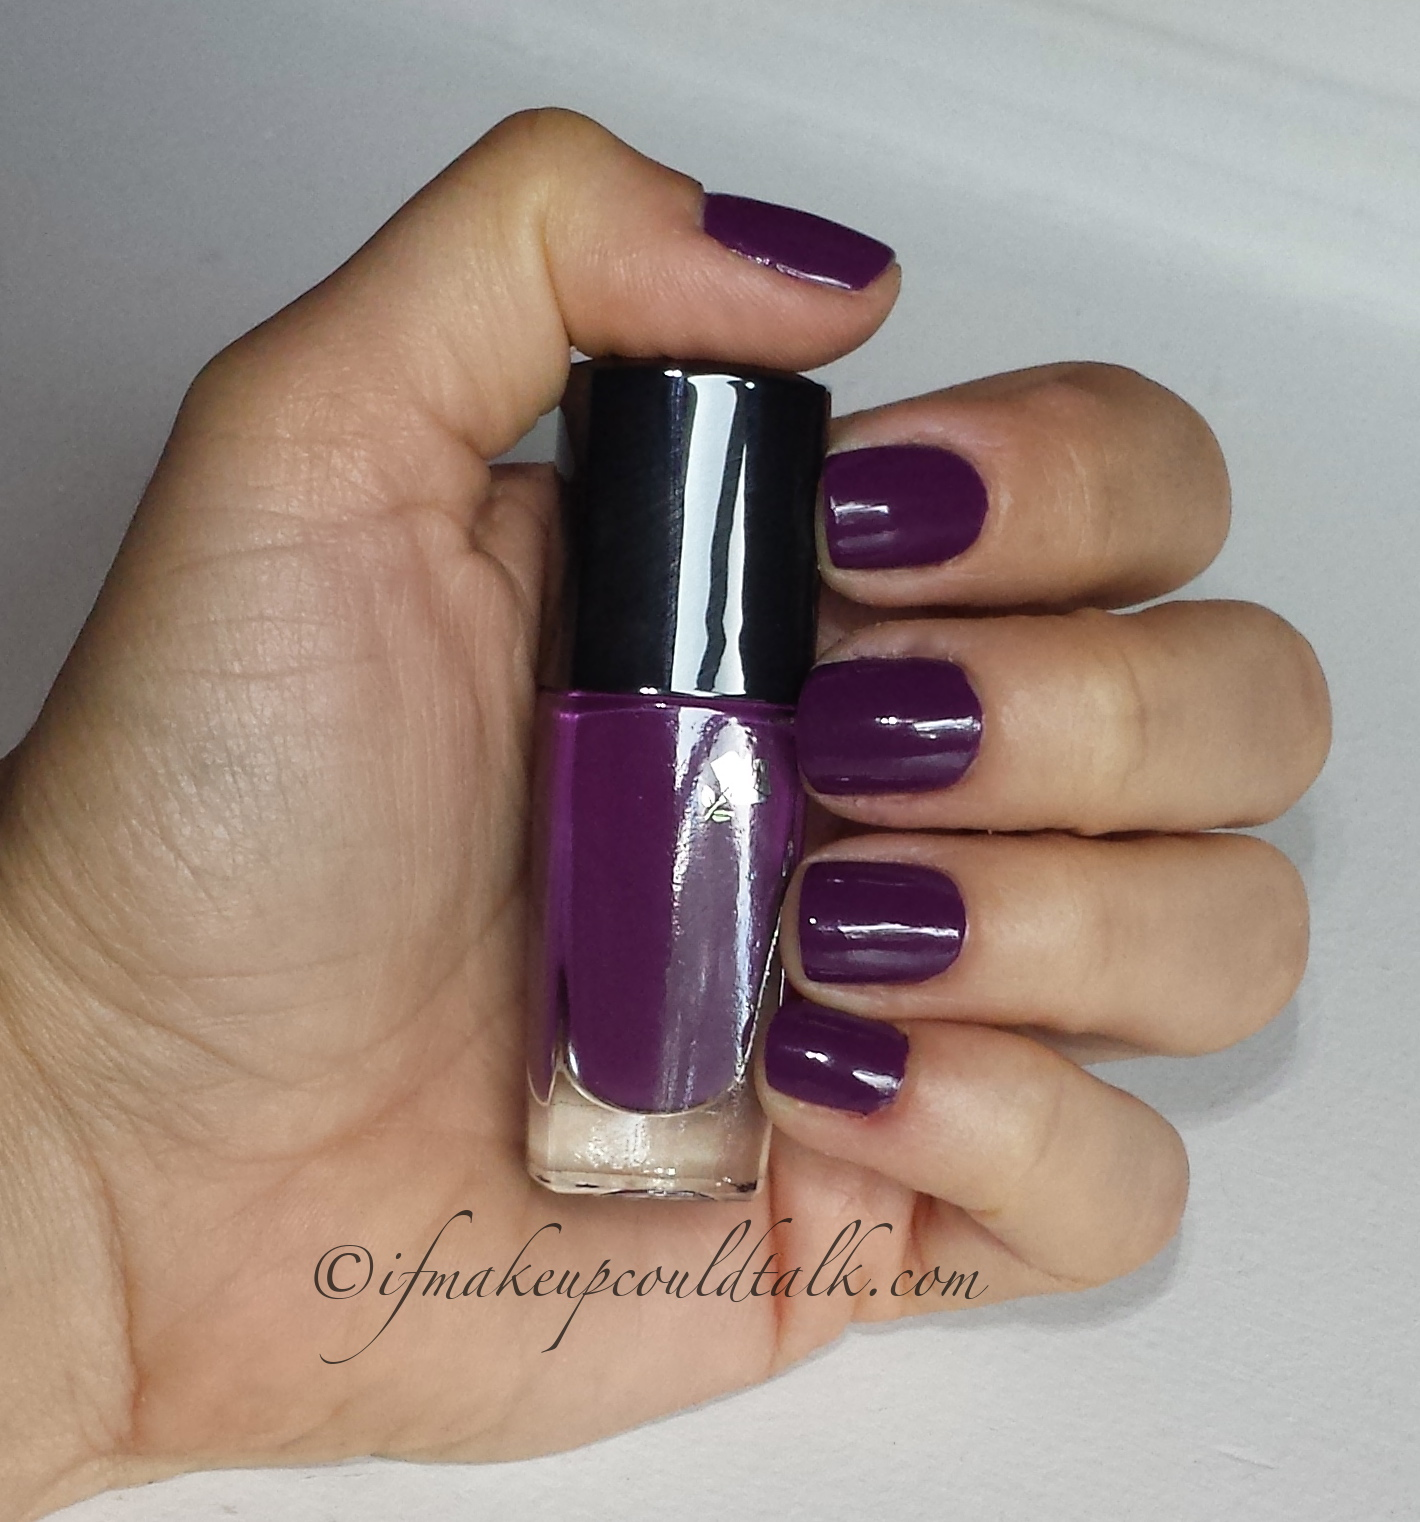 Connu Lancome 441N Midnight Rose Vernis In Love review and photos. - If  FH76